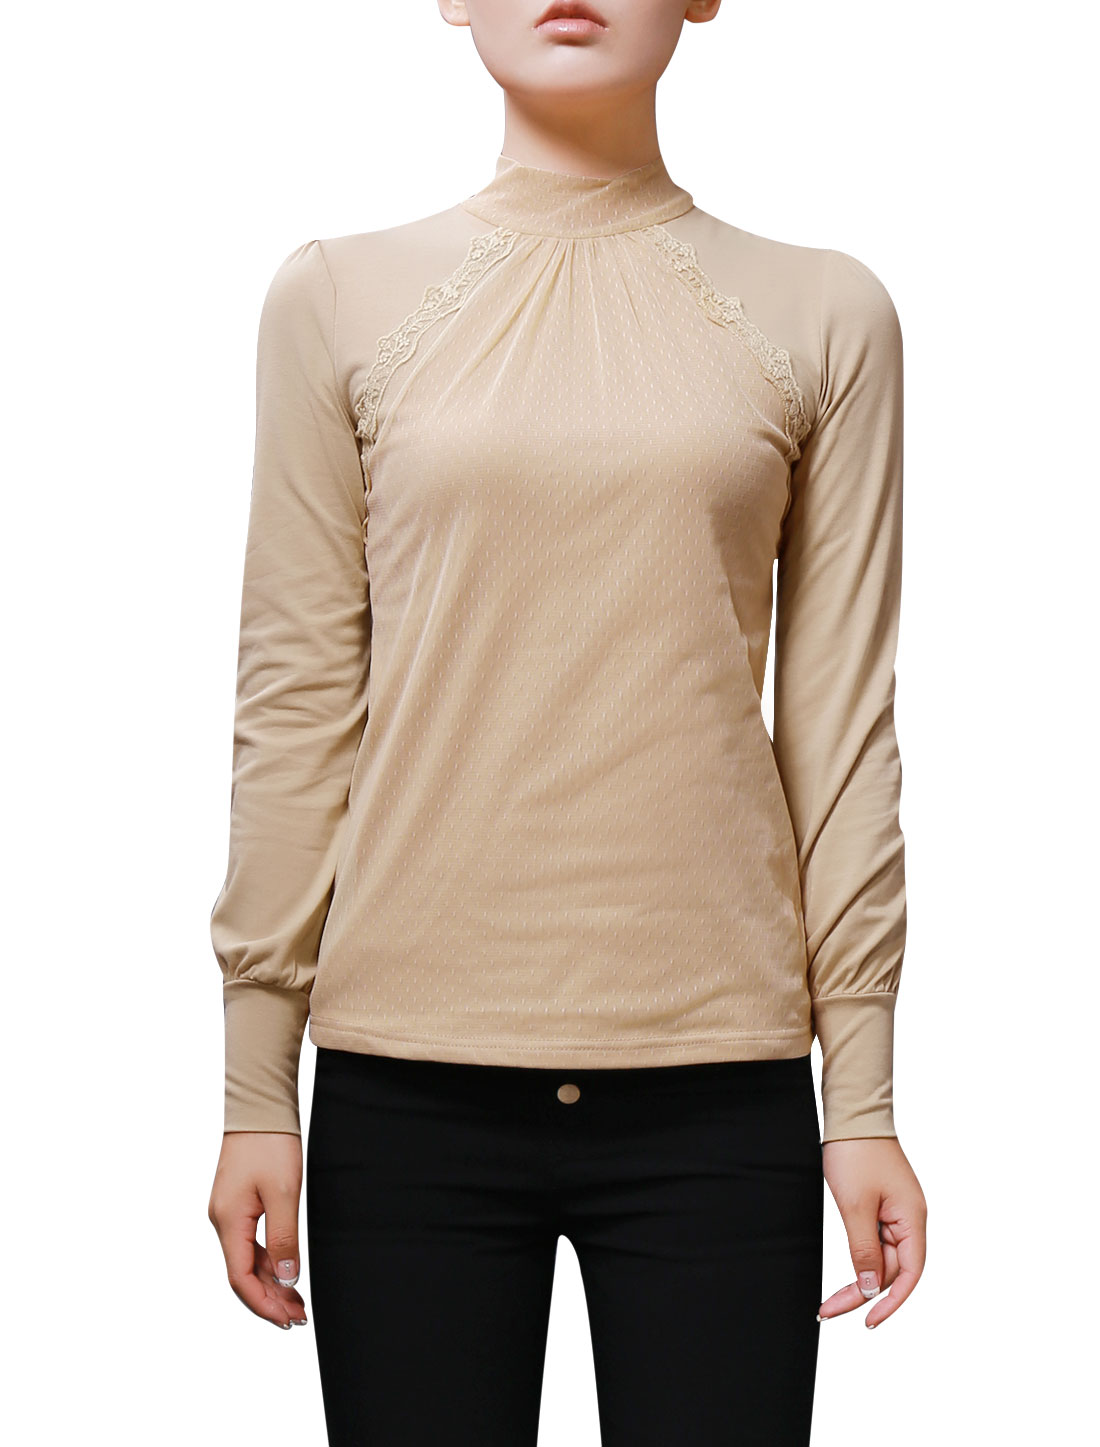 Ladies Beige Pullover Design Mesh Panel Front Bracelet Sleeve Slim Blouse XS